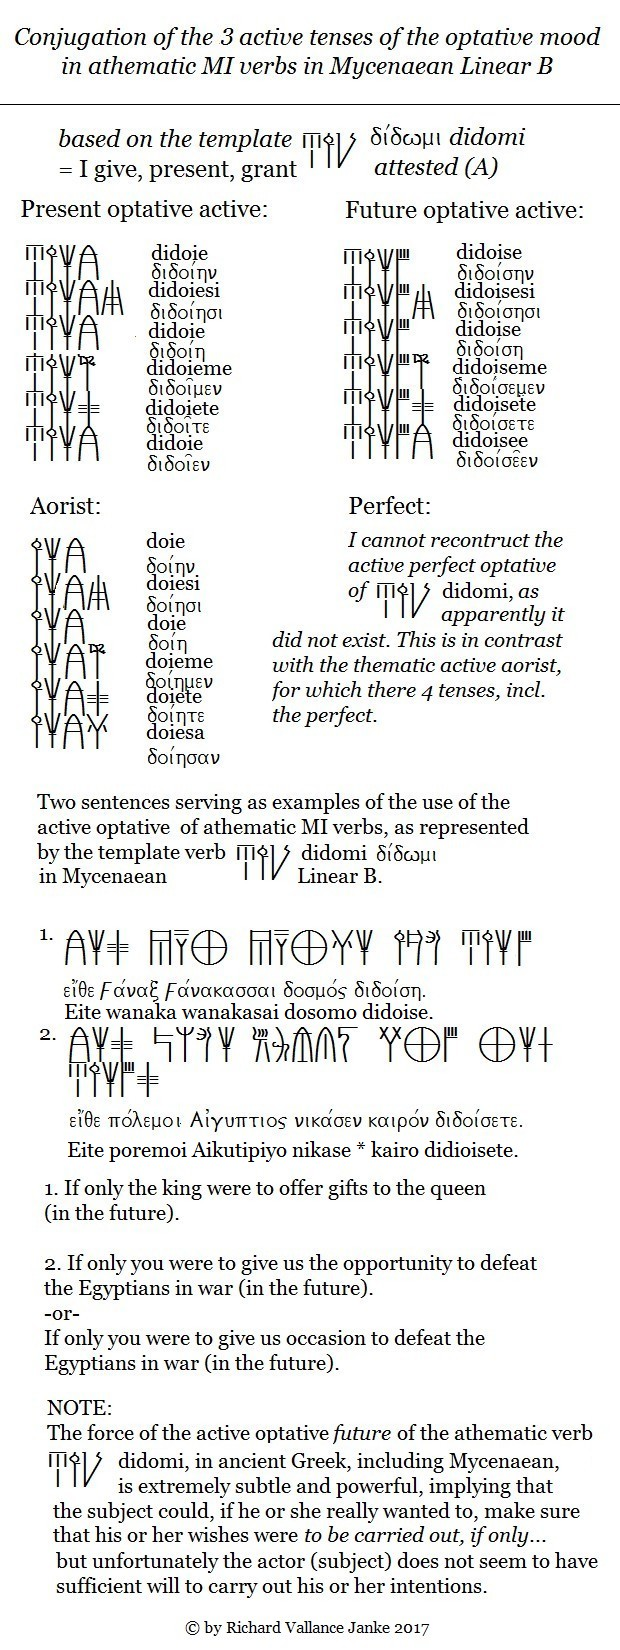 athematic-mi-optative-active-verbs-template-didomi-in-mycenaean-linear-b